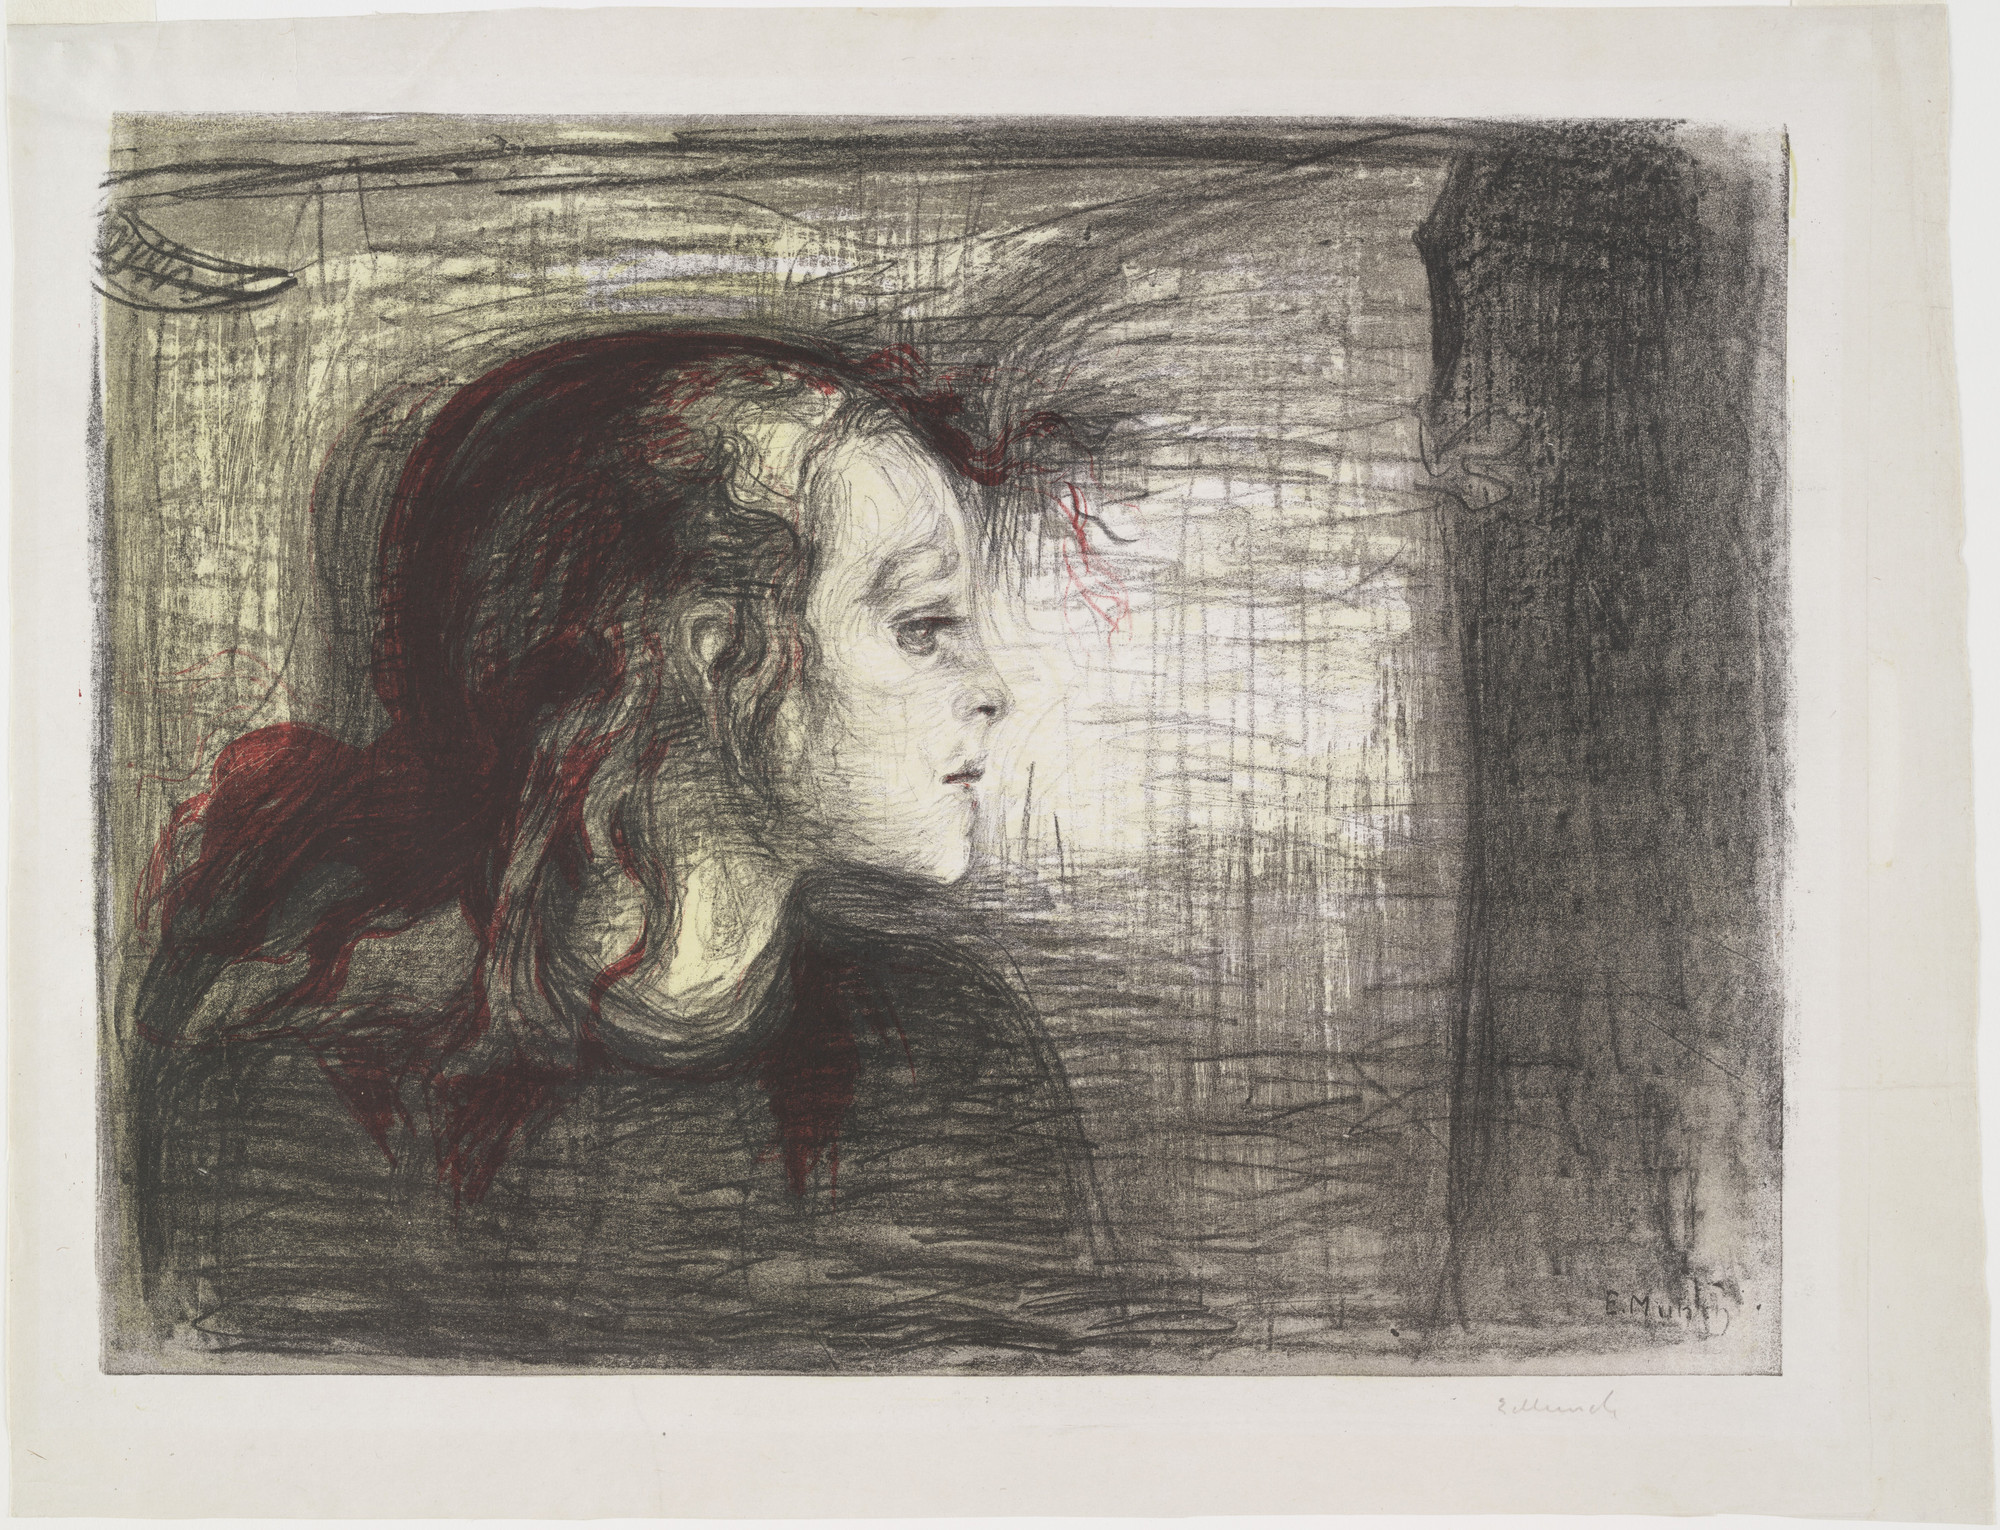 Edvard Munch. The Sick Child I (Det syke barn I). 1896